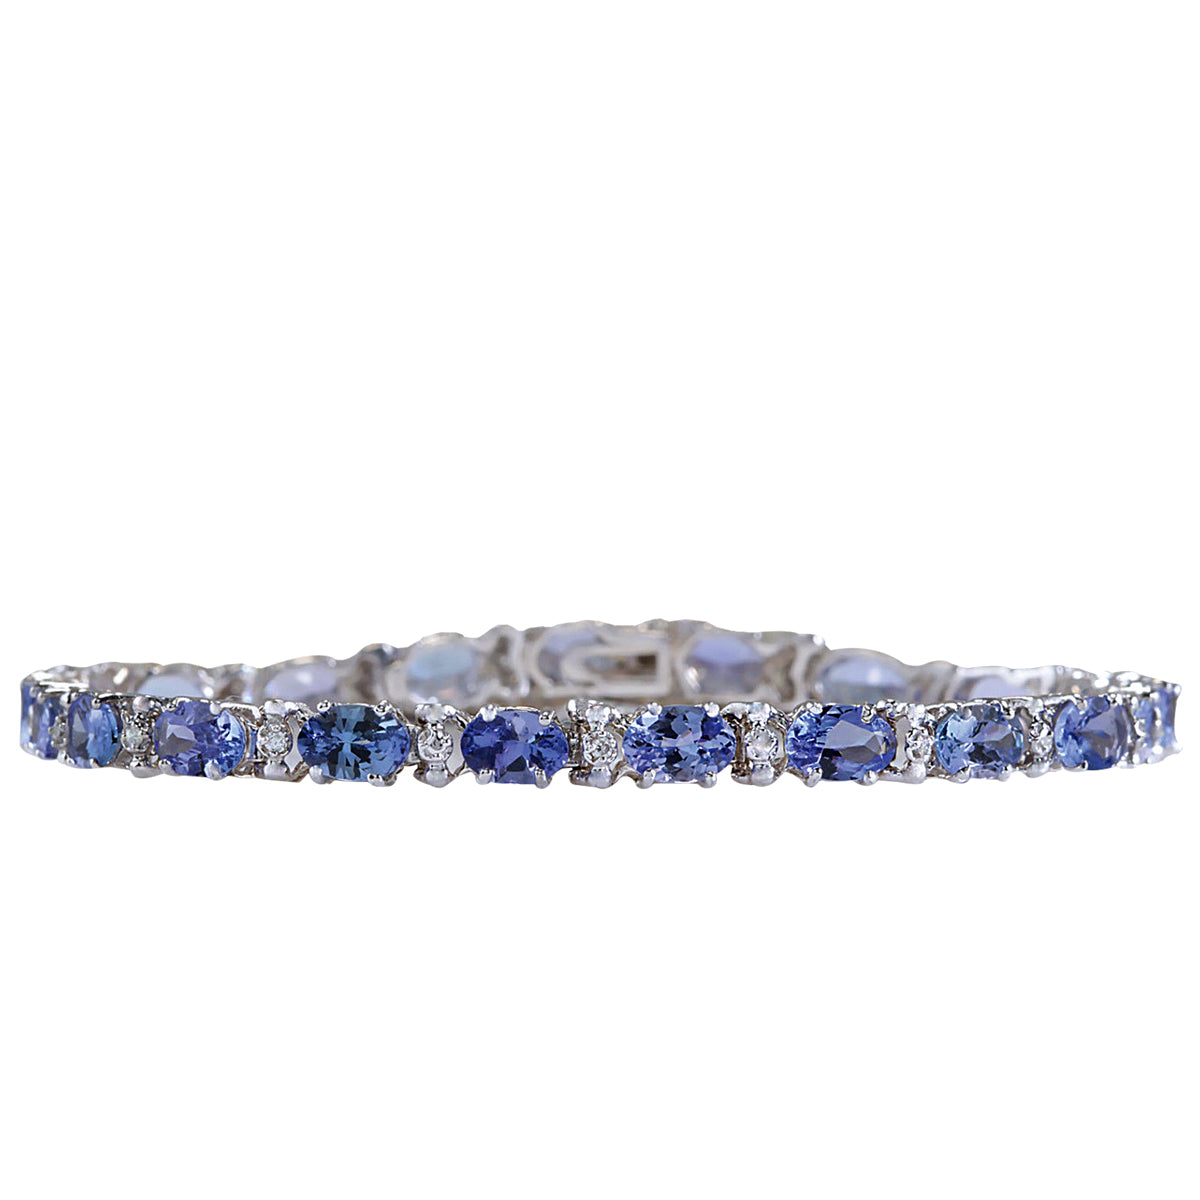 9.74 Carat Natural Tanzanite 14K White Gold Diamond Bracelet